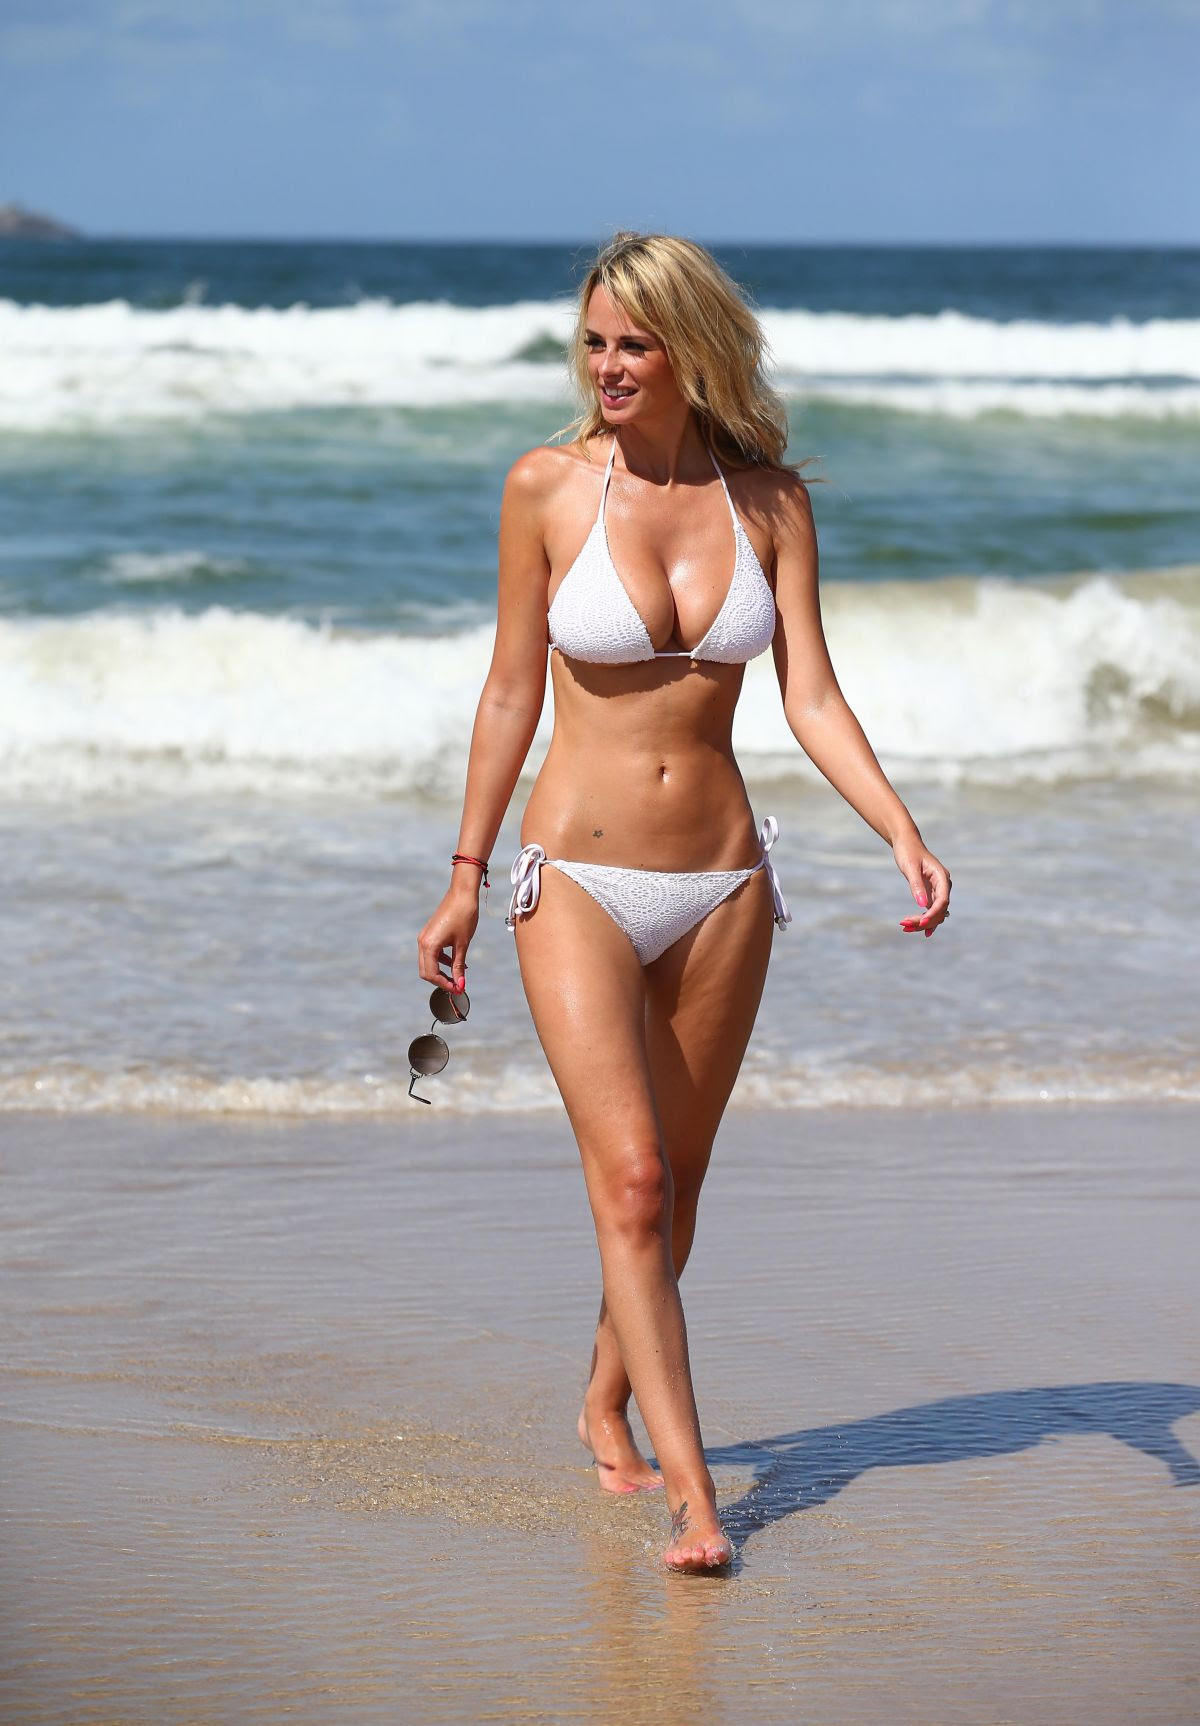 RHIAN SUGDEN in Bikini at Belongil Beach in New South Wales